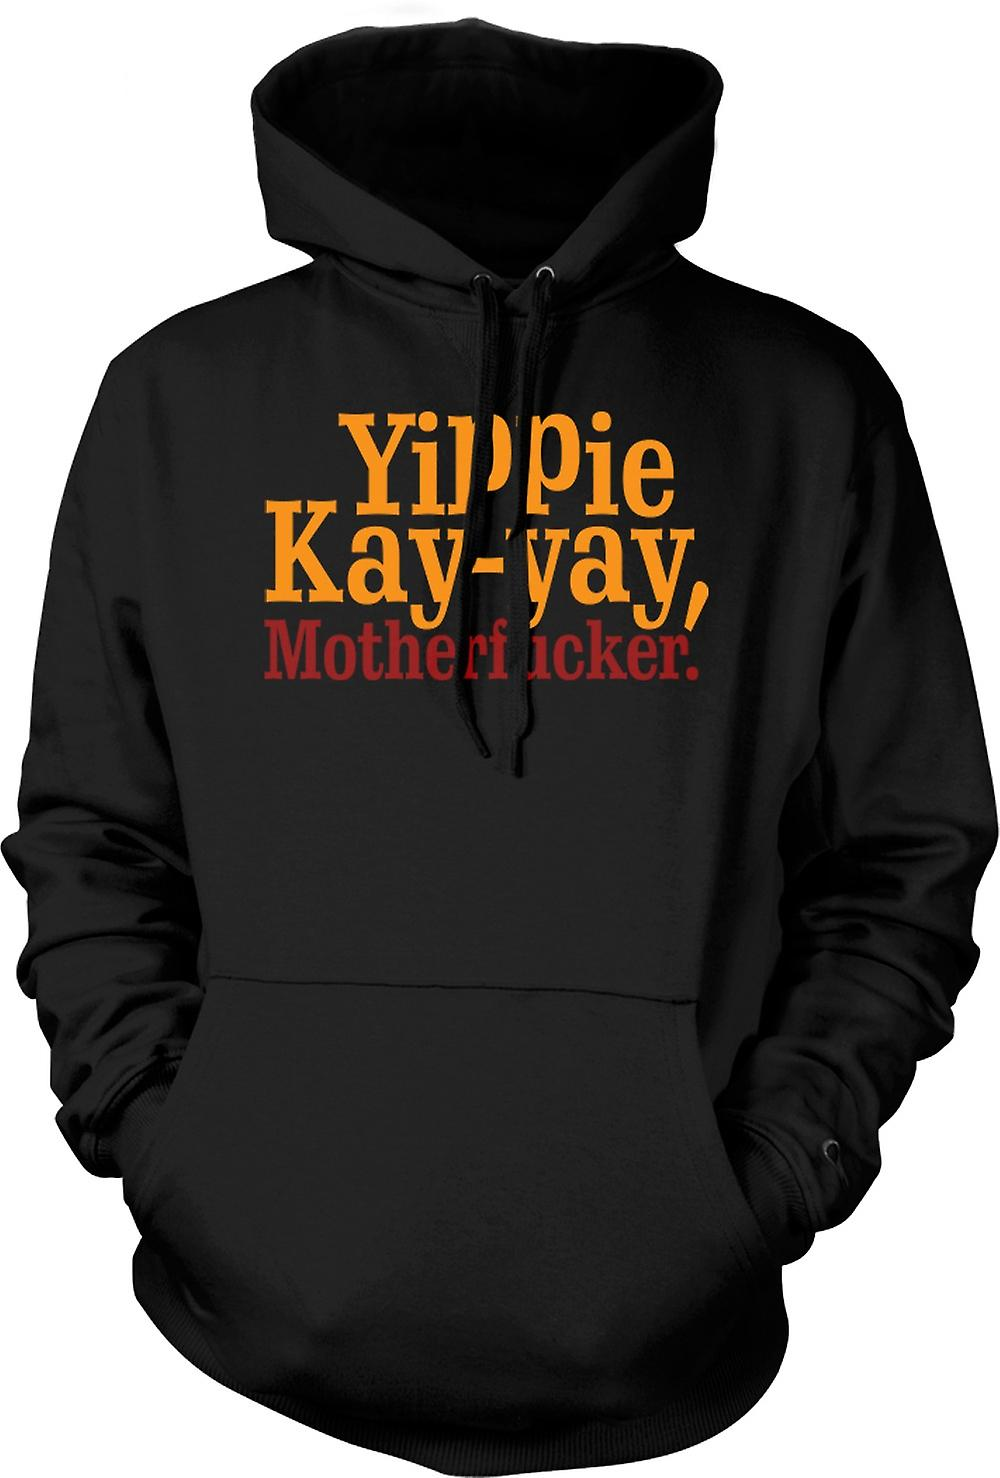 Kids Hoodie - Yippie Kay - Yay, Motherfucker - Funny Quote